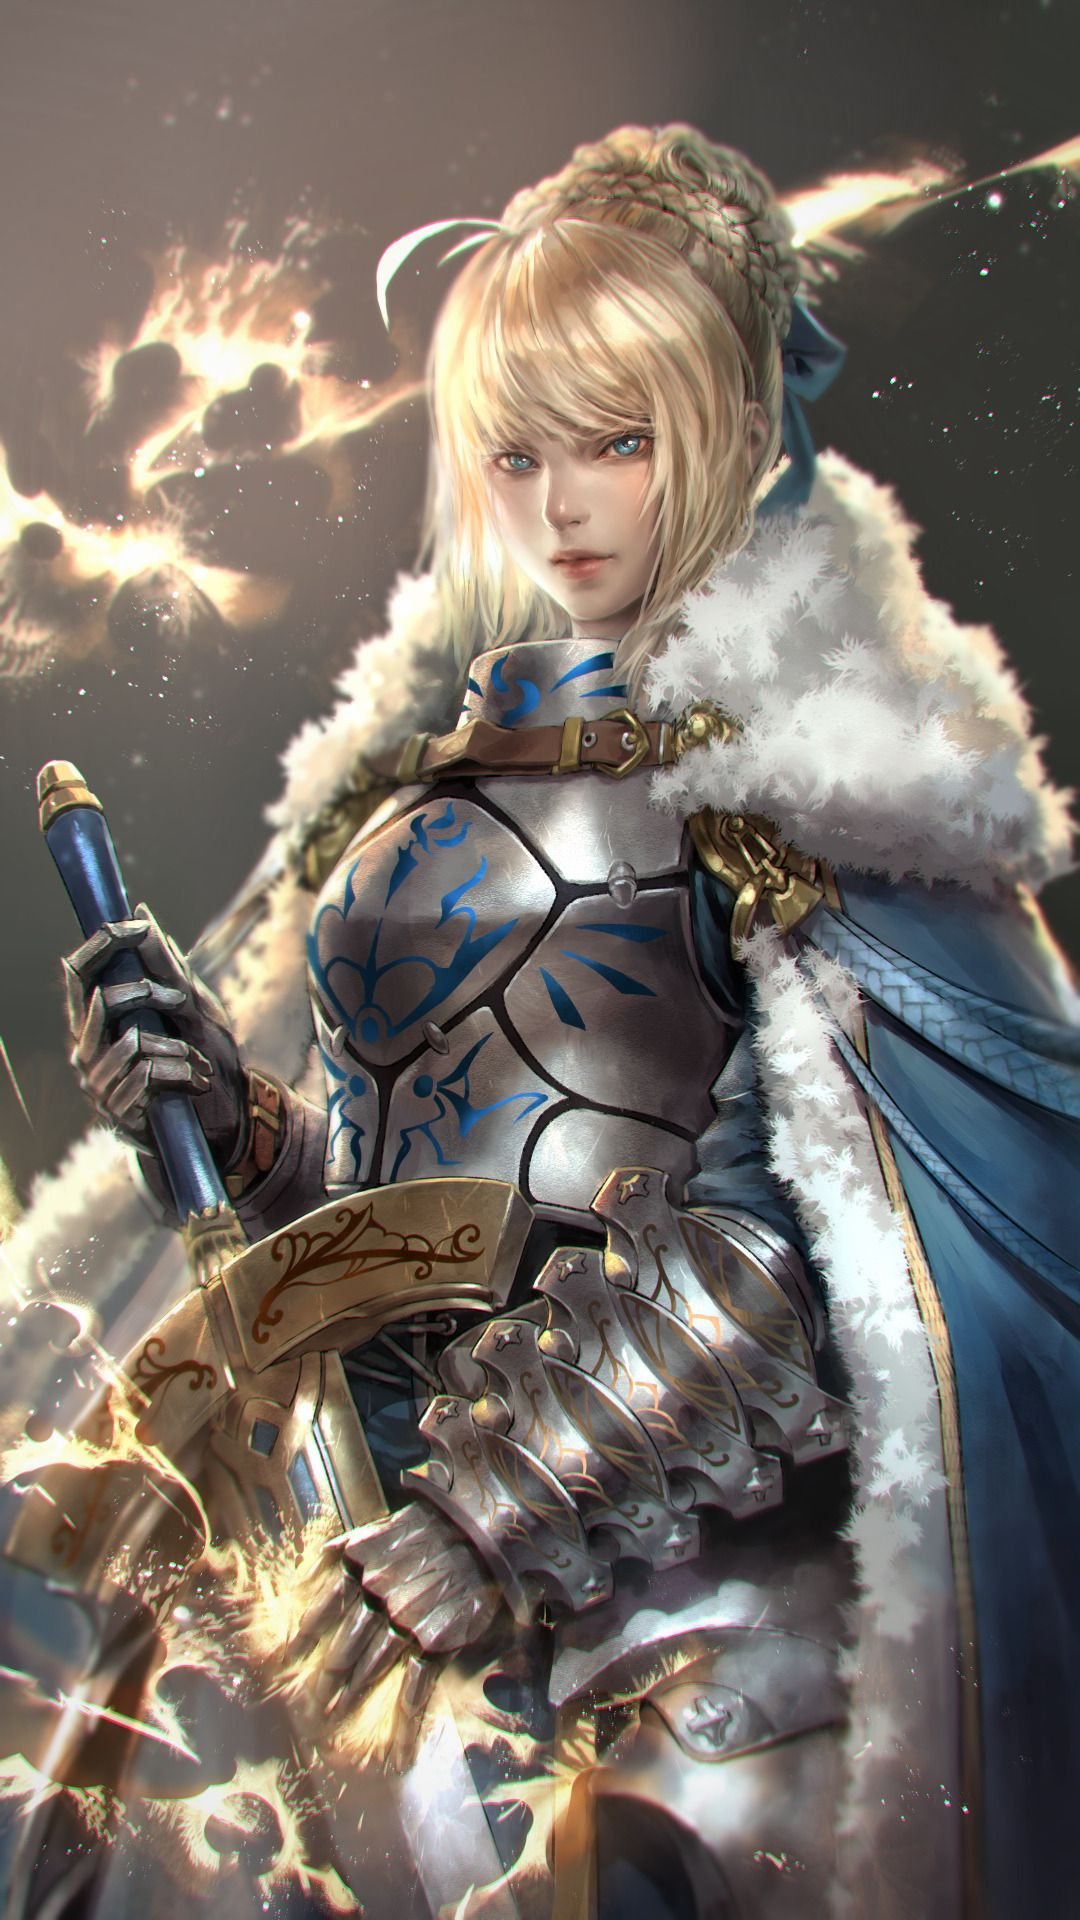 Queen Artoria Pendragon (Saber) Fate series anime digital